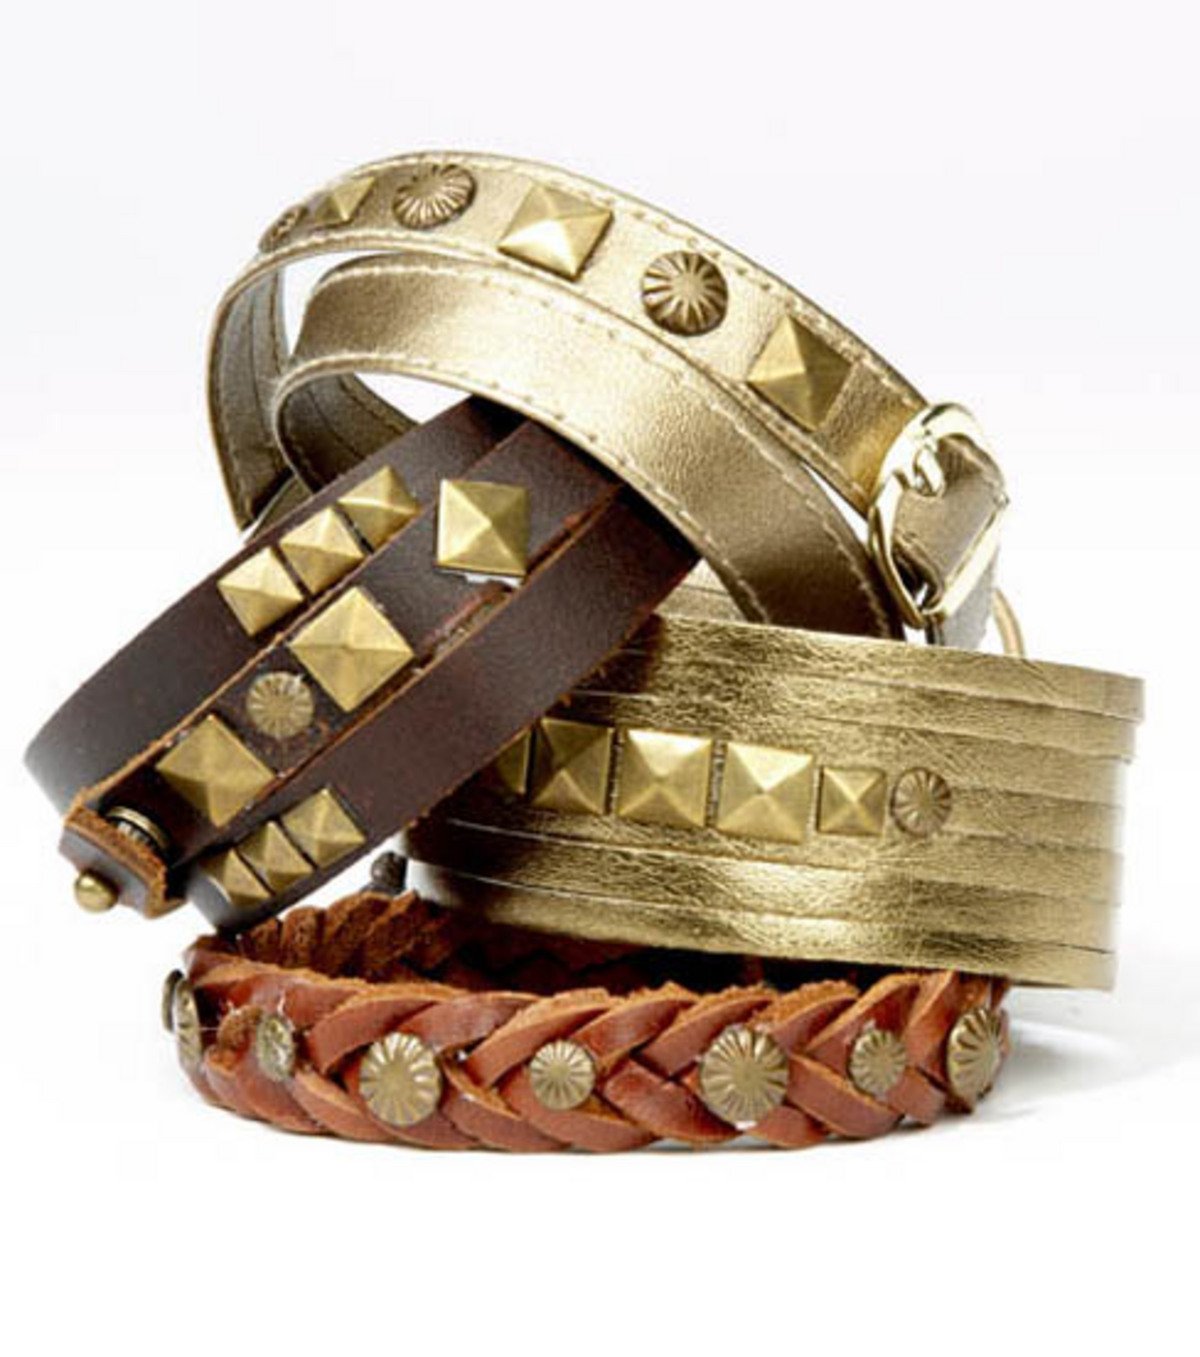 Wrap Around Leather Bracelet with Buckle